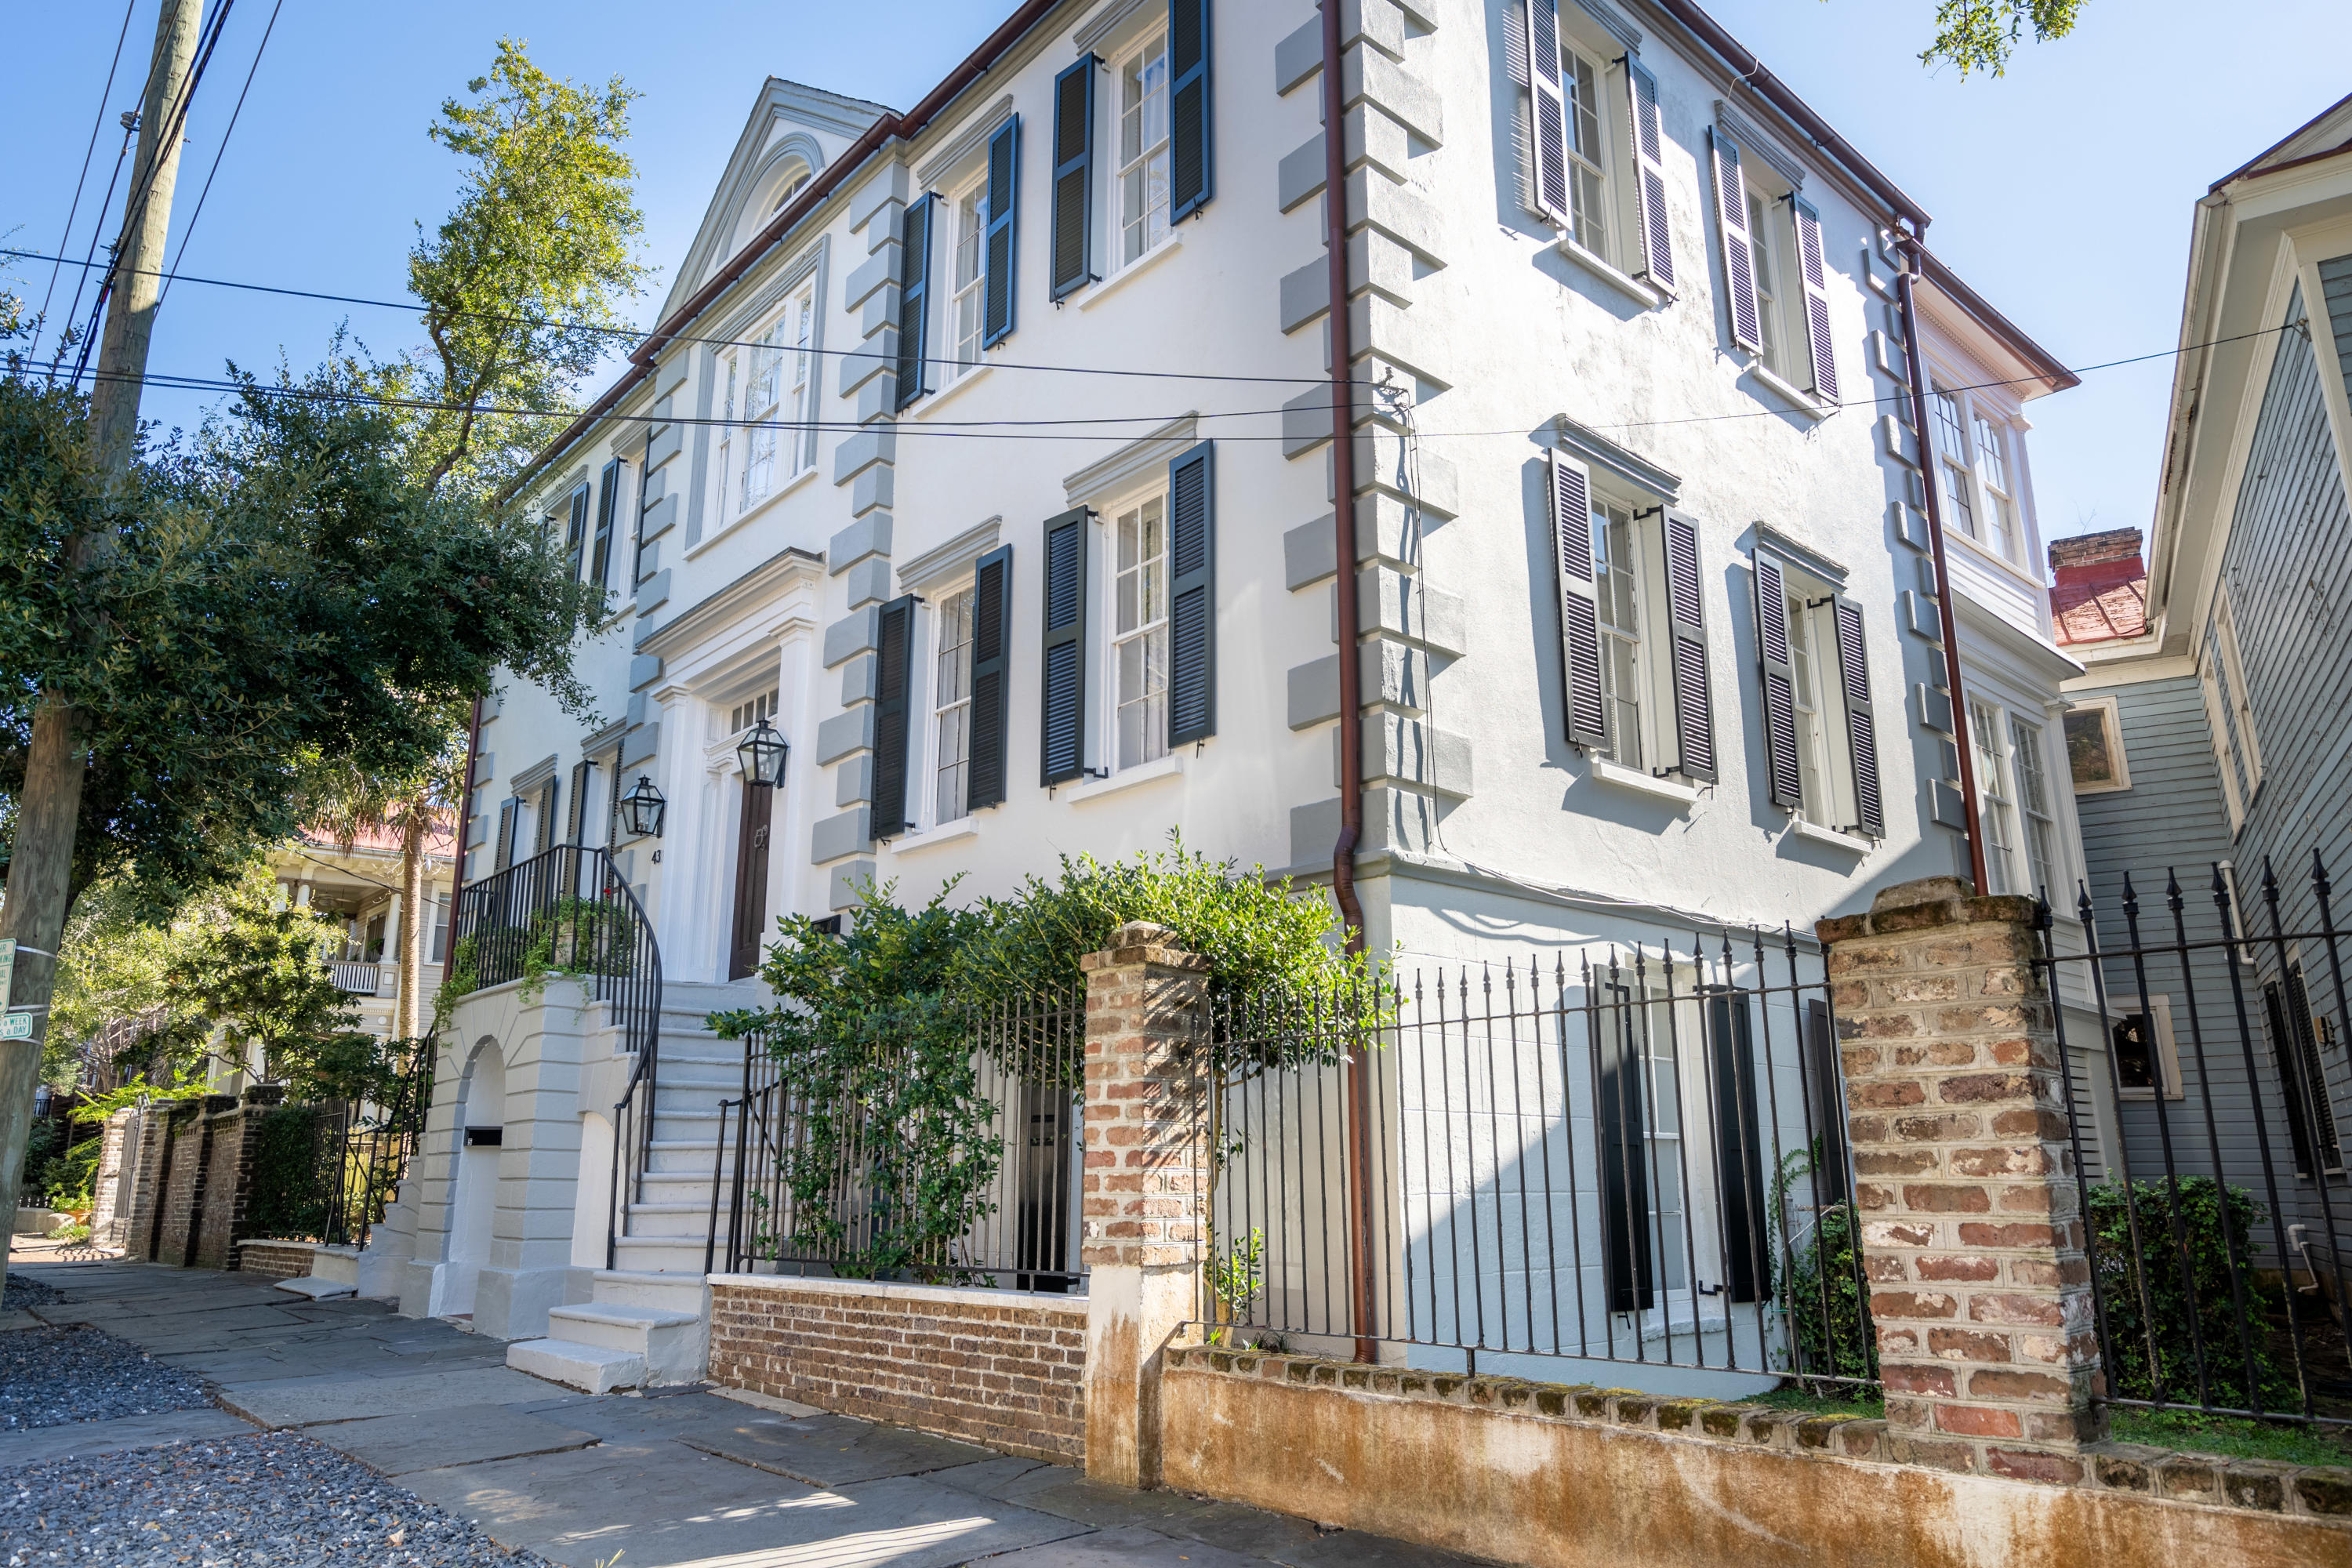 43 Charlotte Street, Charleston, 29403, ,MultiFamily,For Sale,Charlotte,21011603